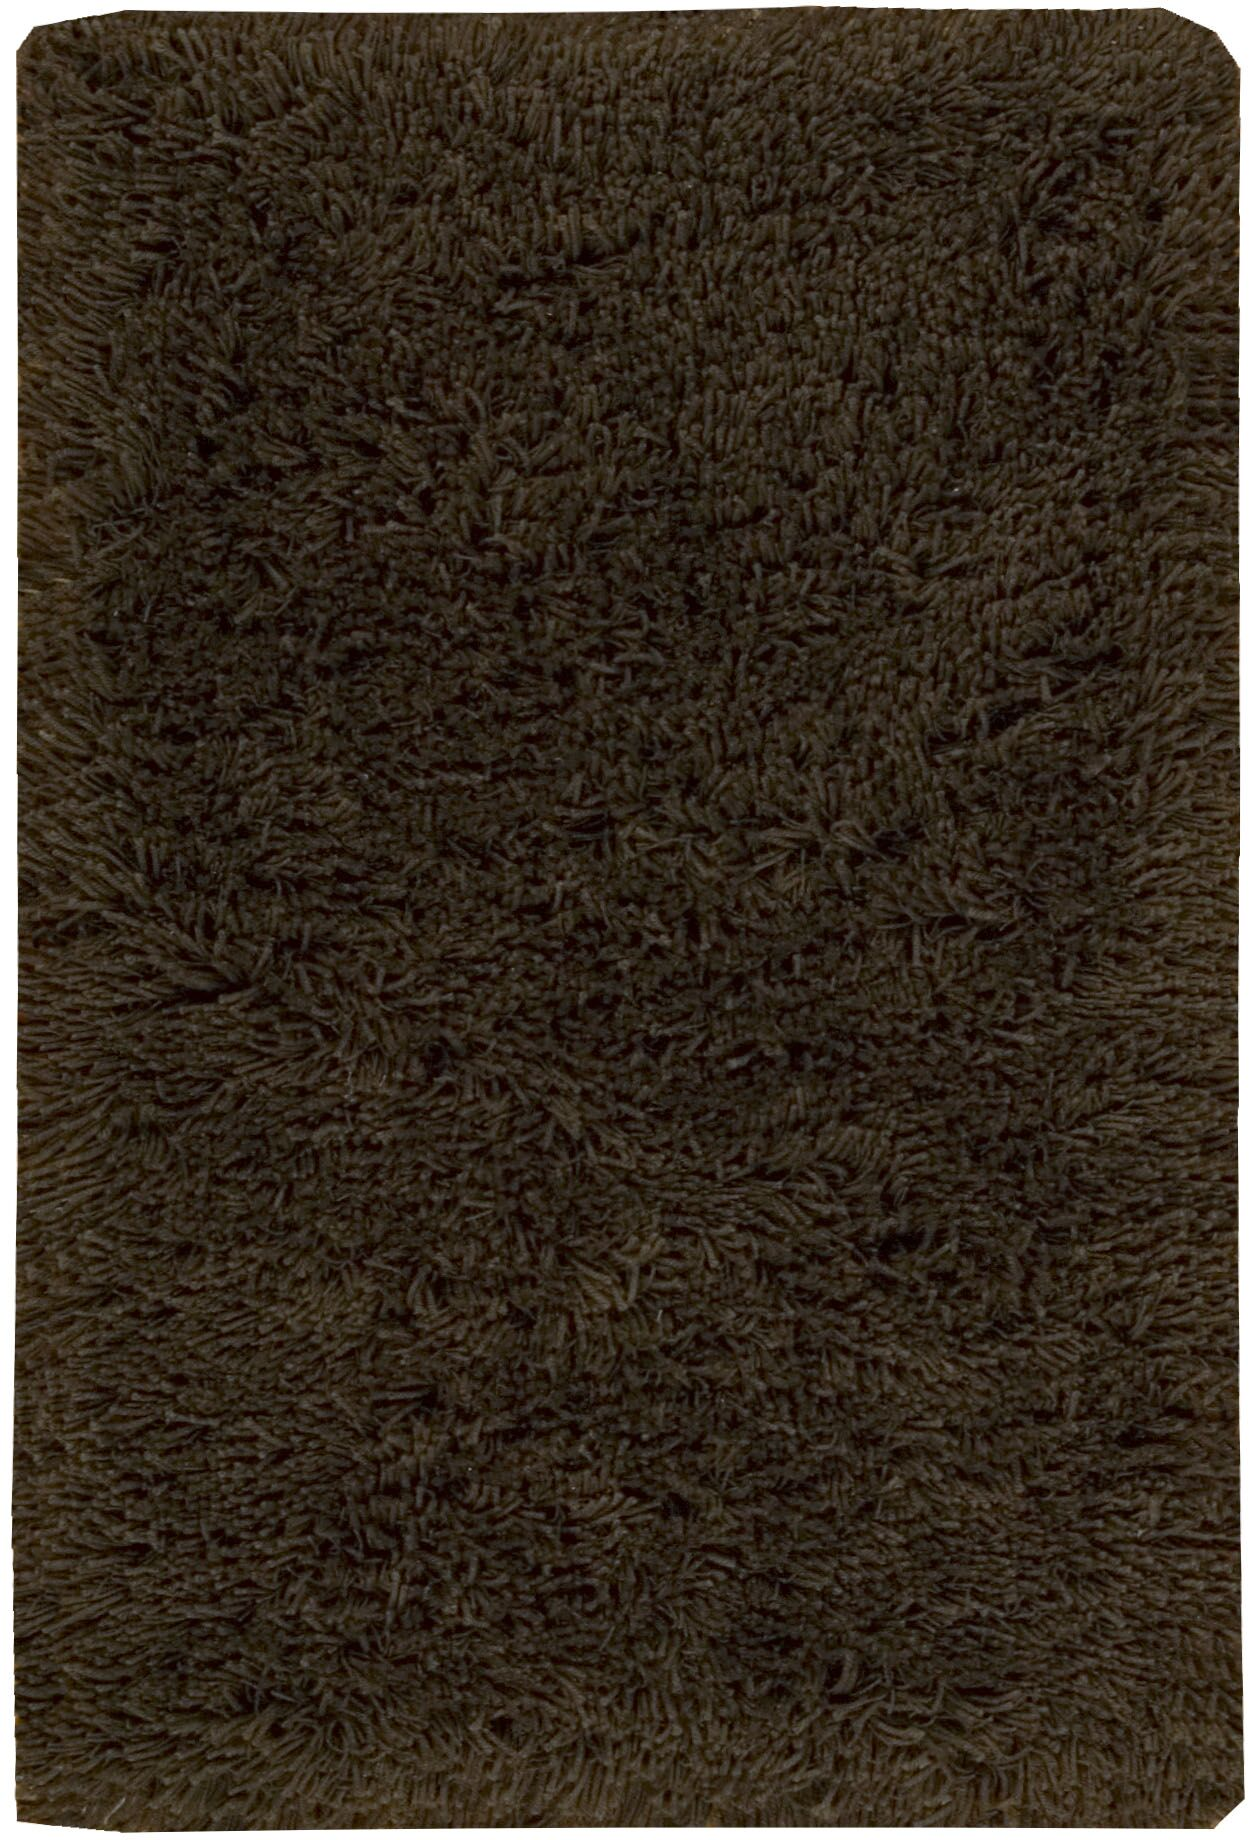 Wallaceton Hand-Woven Chocolate Area Rug Rug Size: Rectangle 5' x 8'